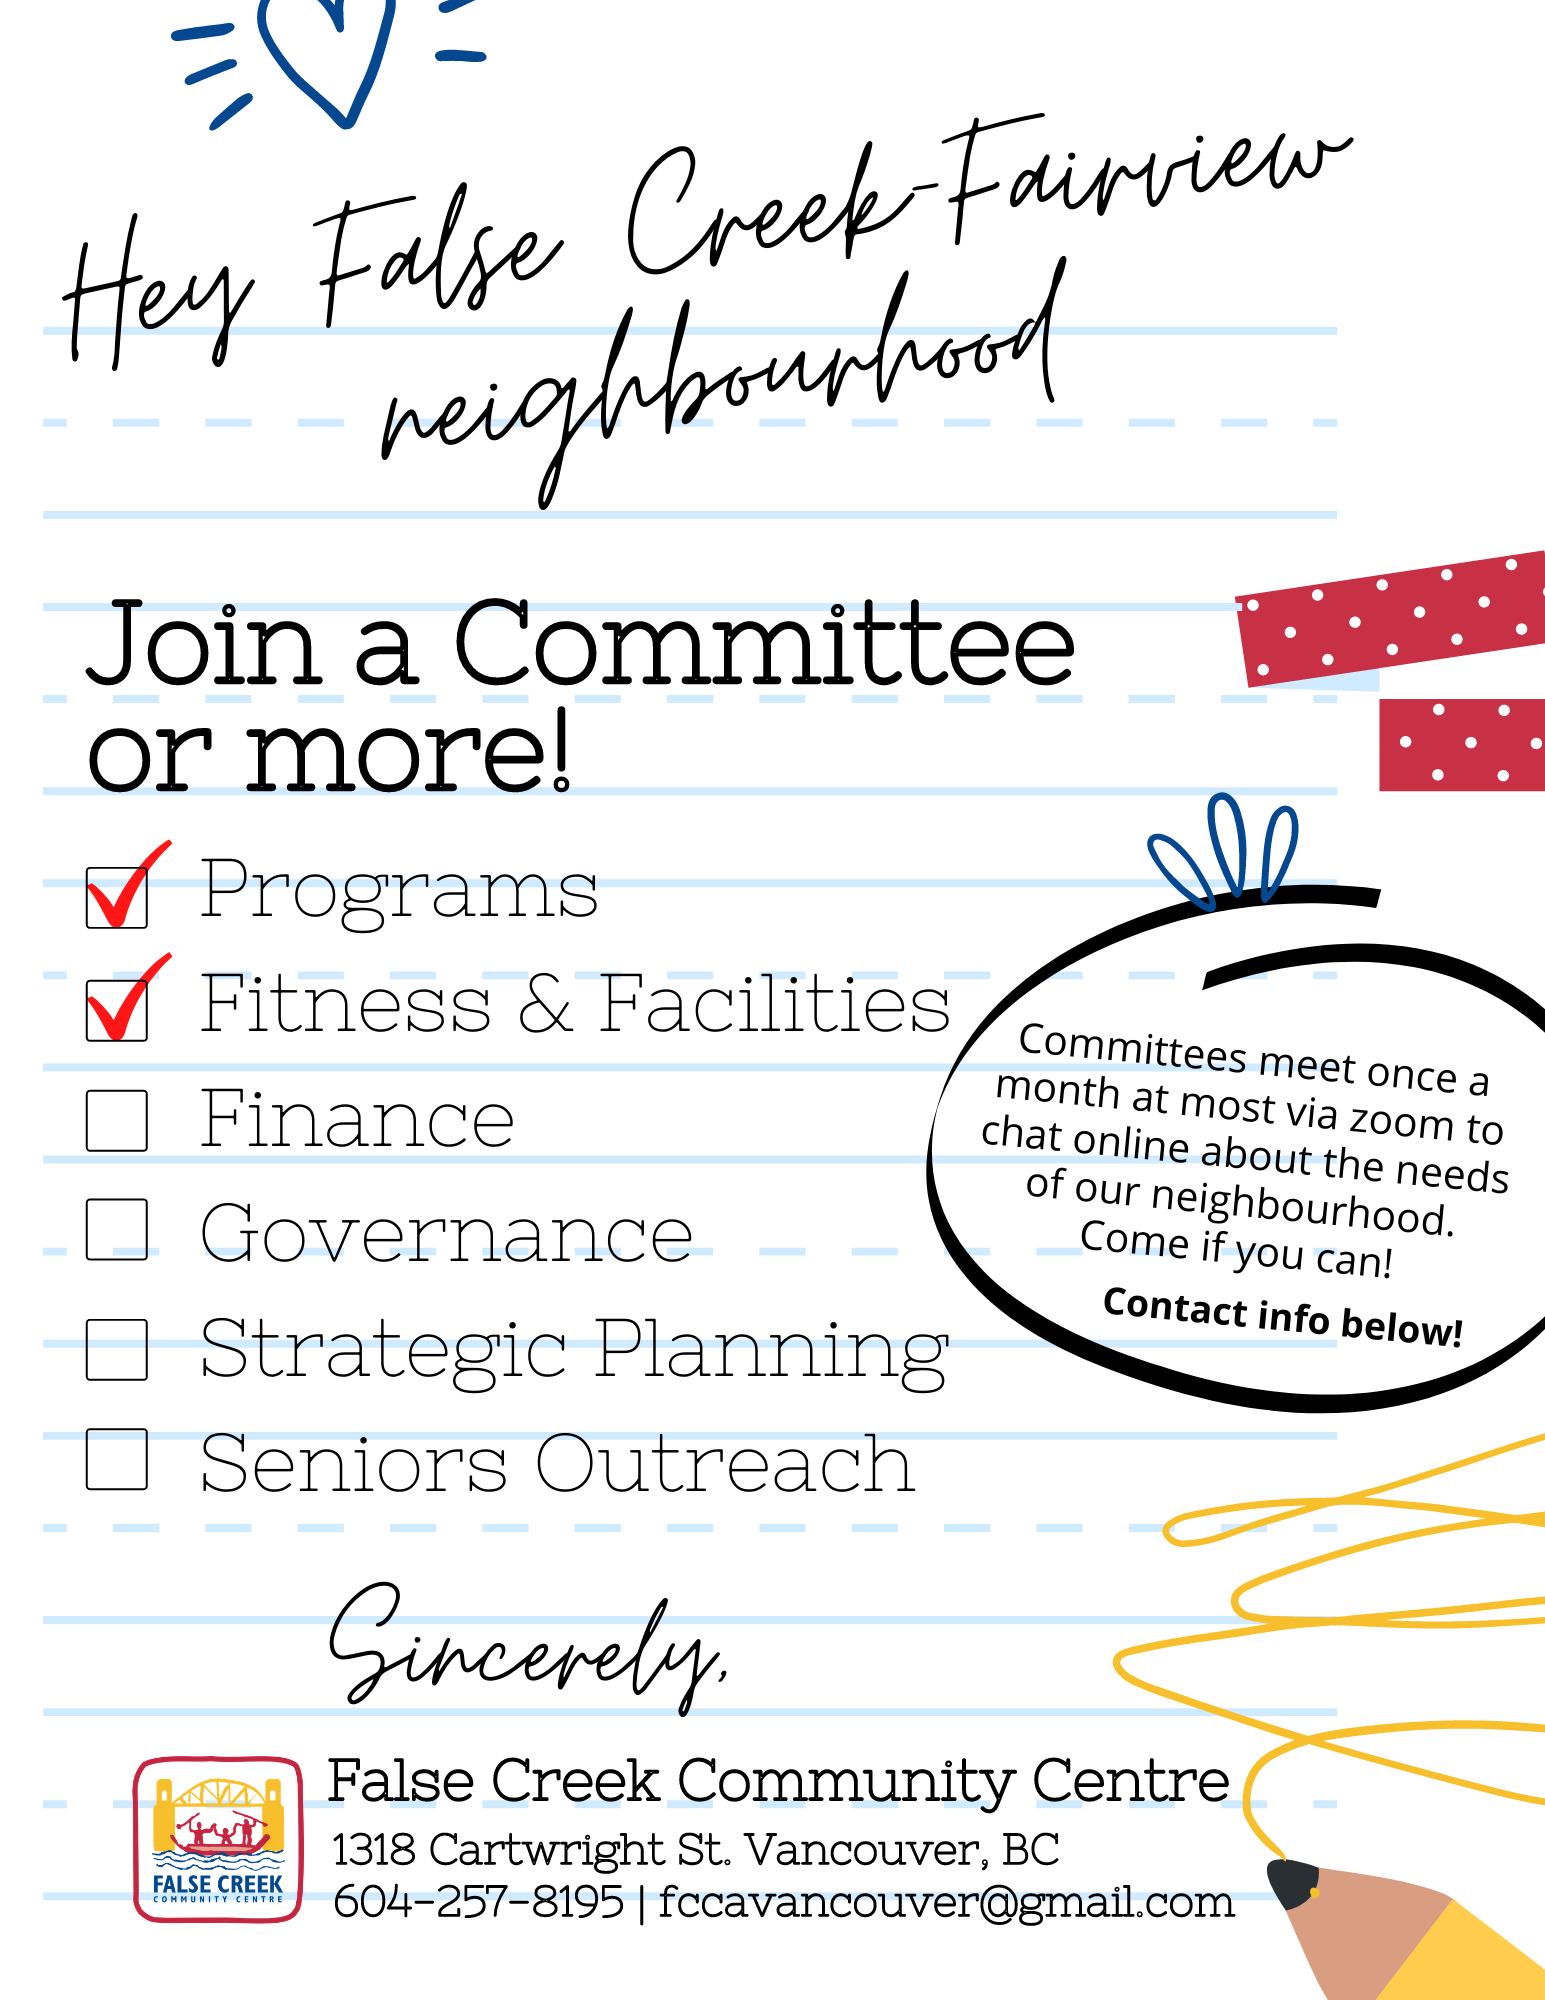 Hey False Creek-Fairview neighbourhood, Join a Committee or more Programs, Fitness & Facilities, Finance, Governance, Strategic Planning, Seniors Outreach Committees meet once a month at most via zoom to chat online about the needs of our neighbourhood. Come if you can!